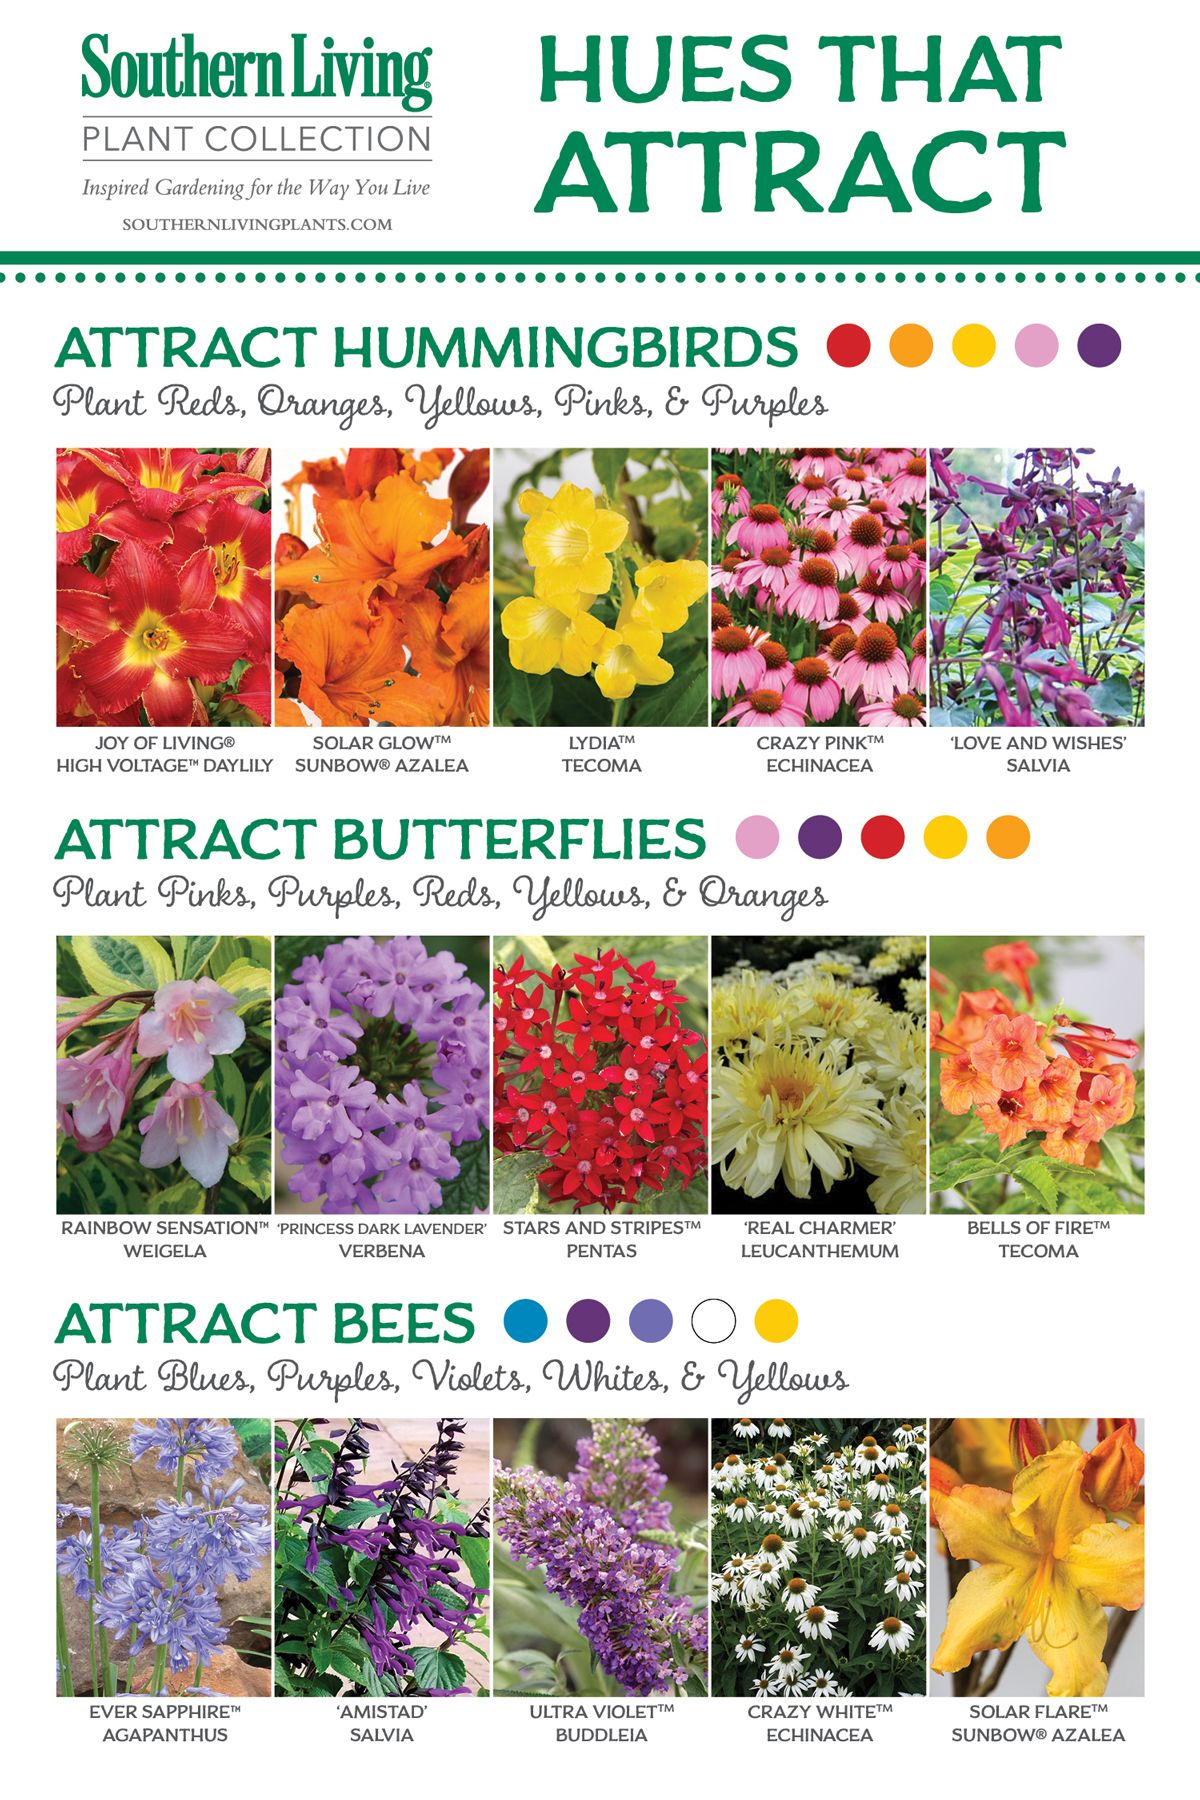 Exceptionnel BIRDS, BEES AND BUTTERFLIES, OH MY! Attracting Pollinators To The Garden.